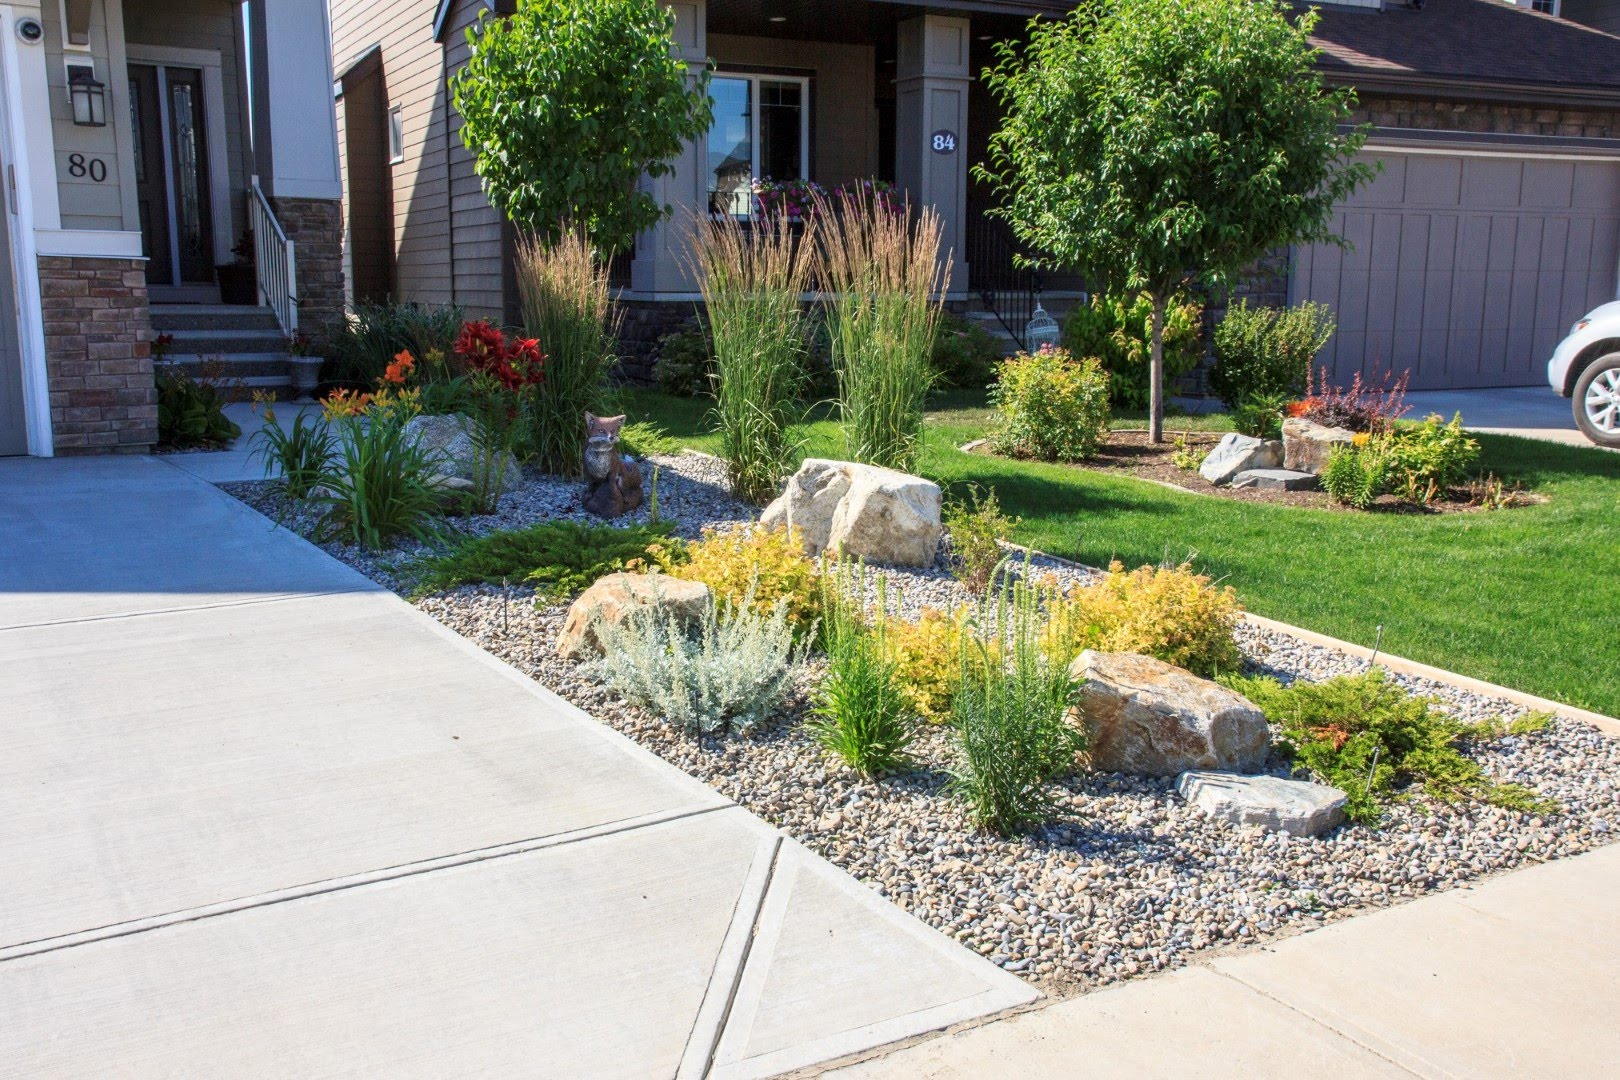 Xeriscaping on a front lawn